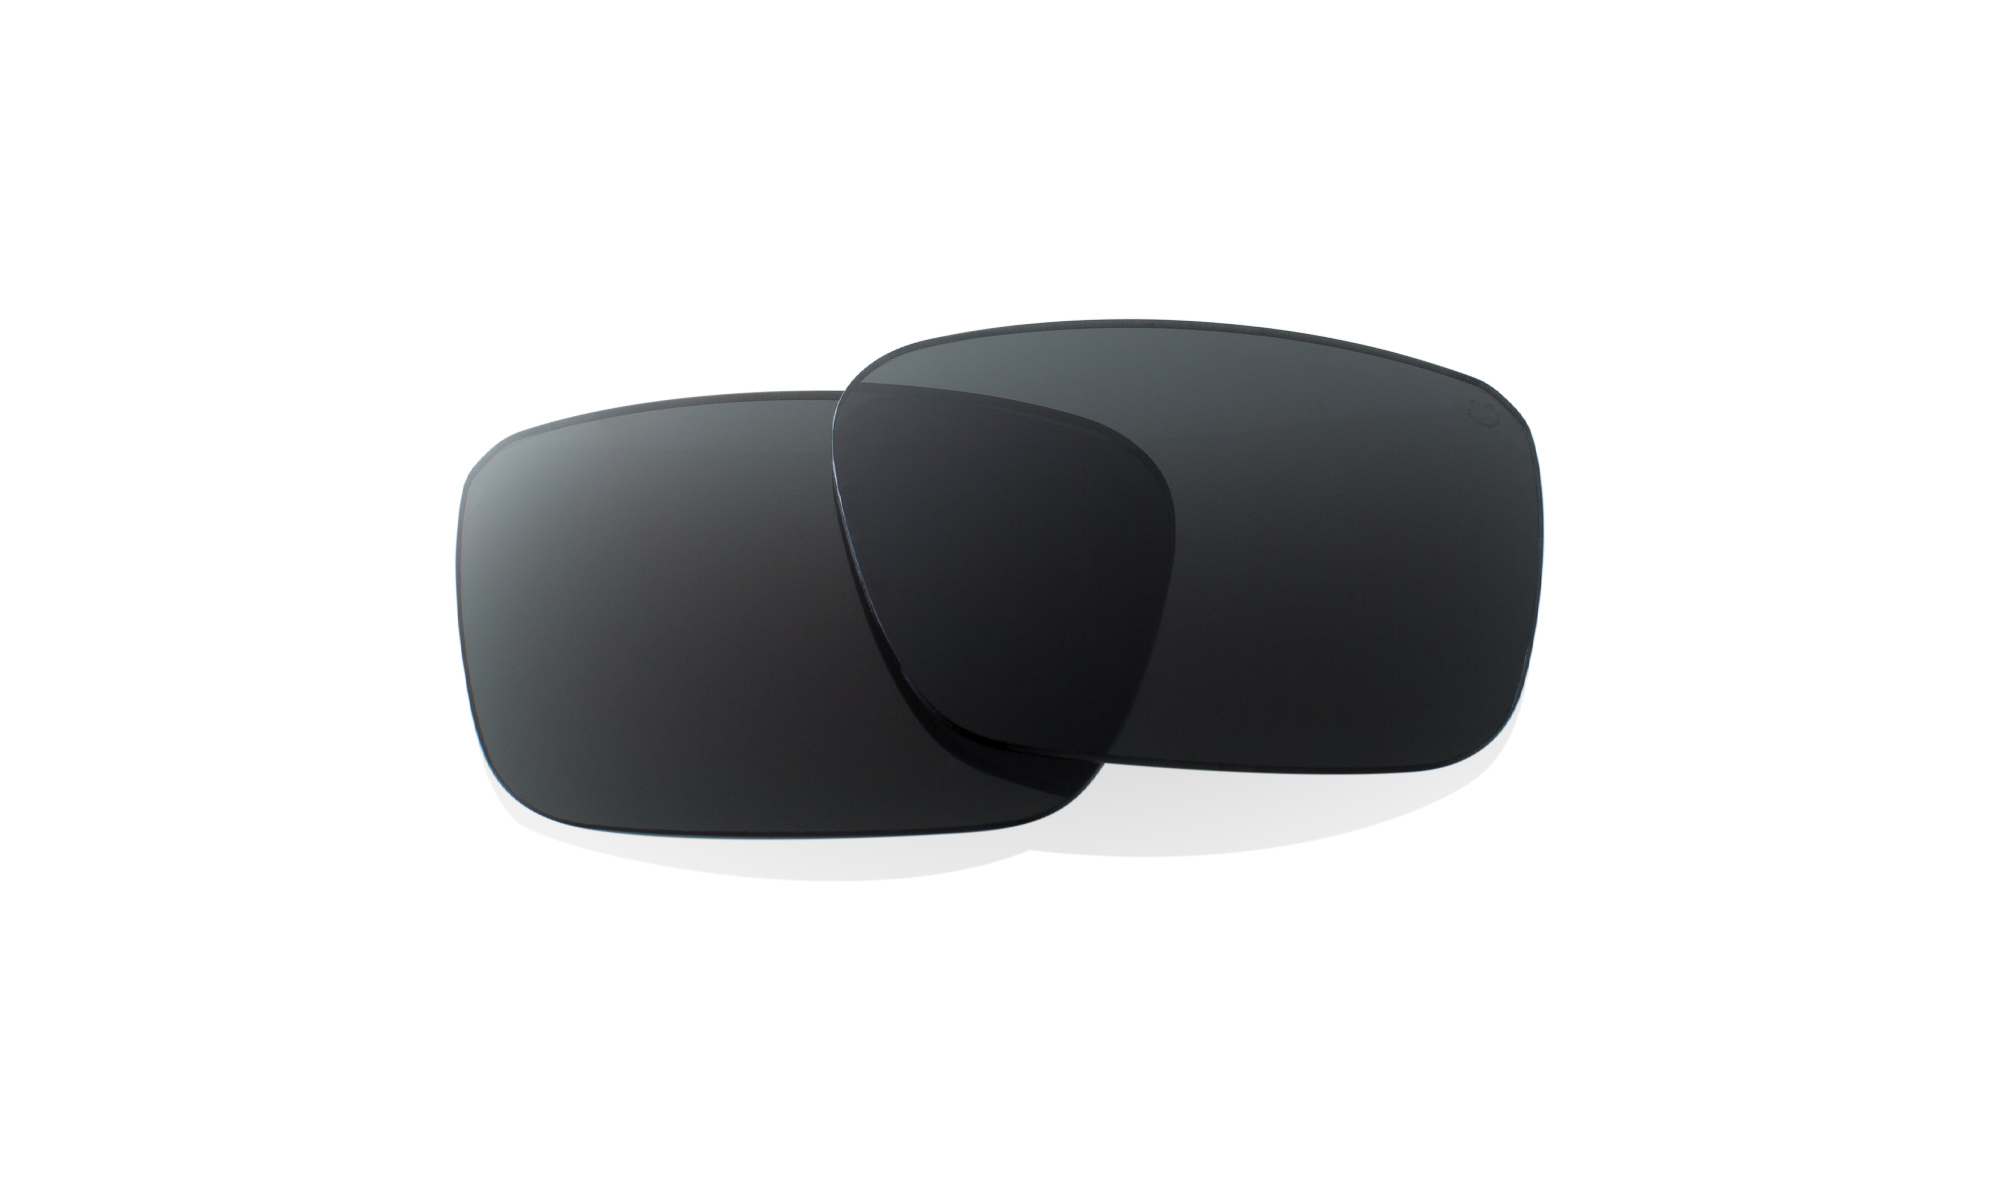 e09e3b8be97 Discord Replacement Lenses - Backed by a 1 year warranty